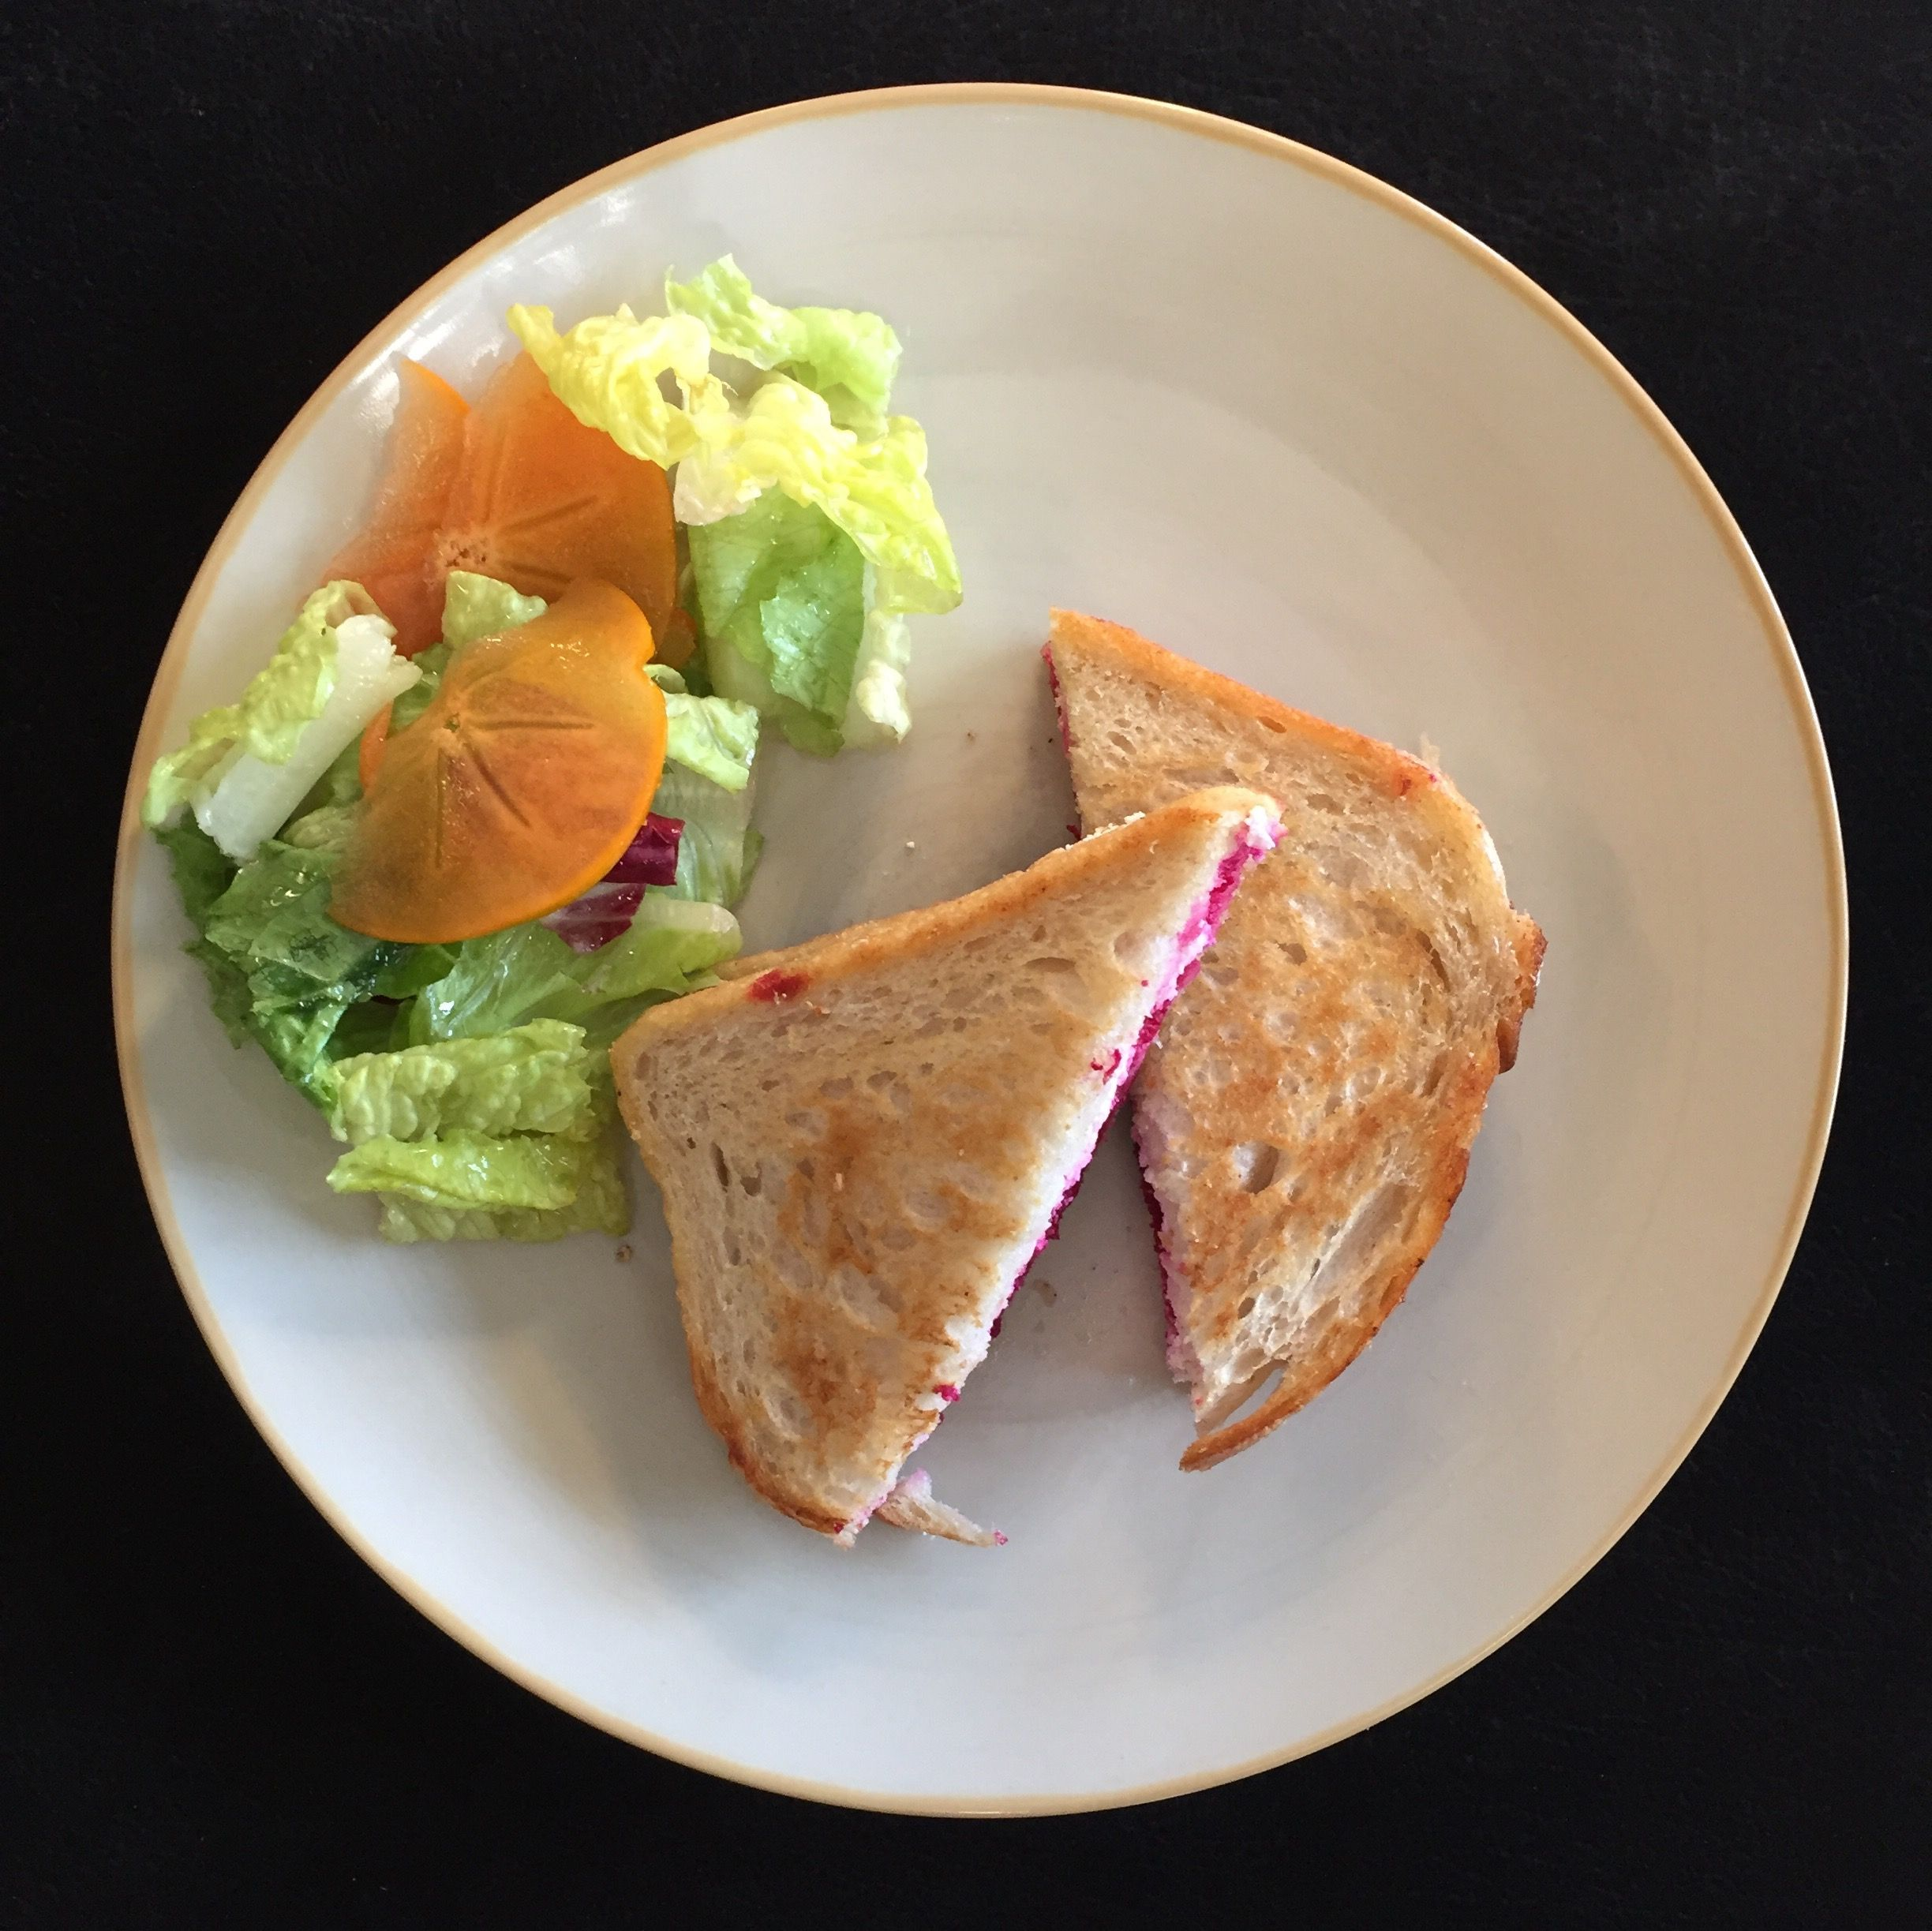 Blue apron quiche artichoke - Ricotta Beet Grilled Cheese Sandwiches With Persimmon And Marinated Salad